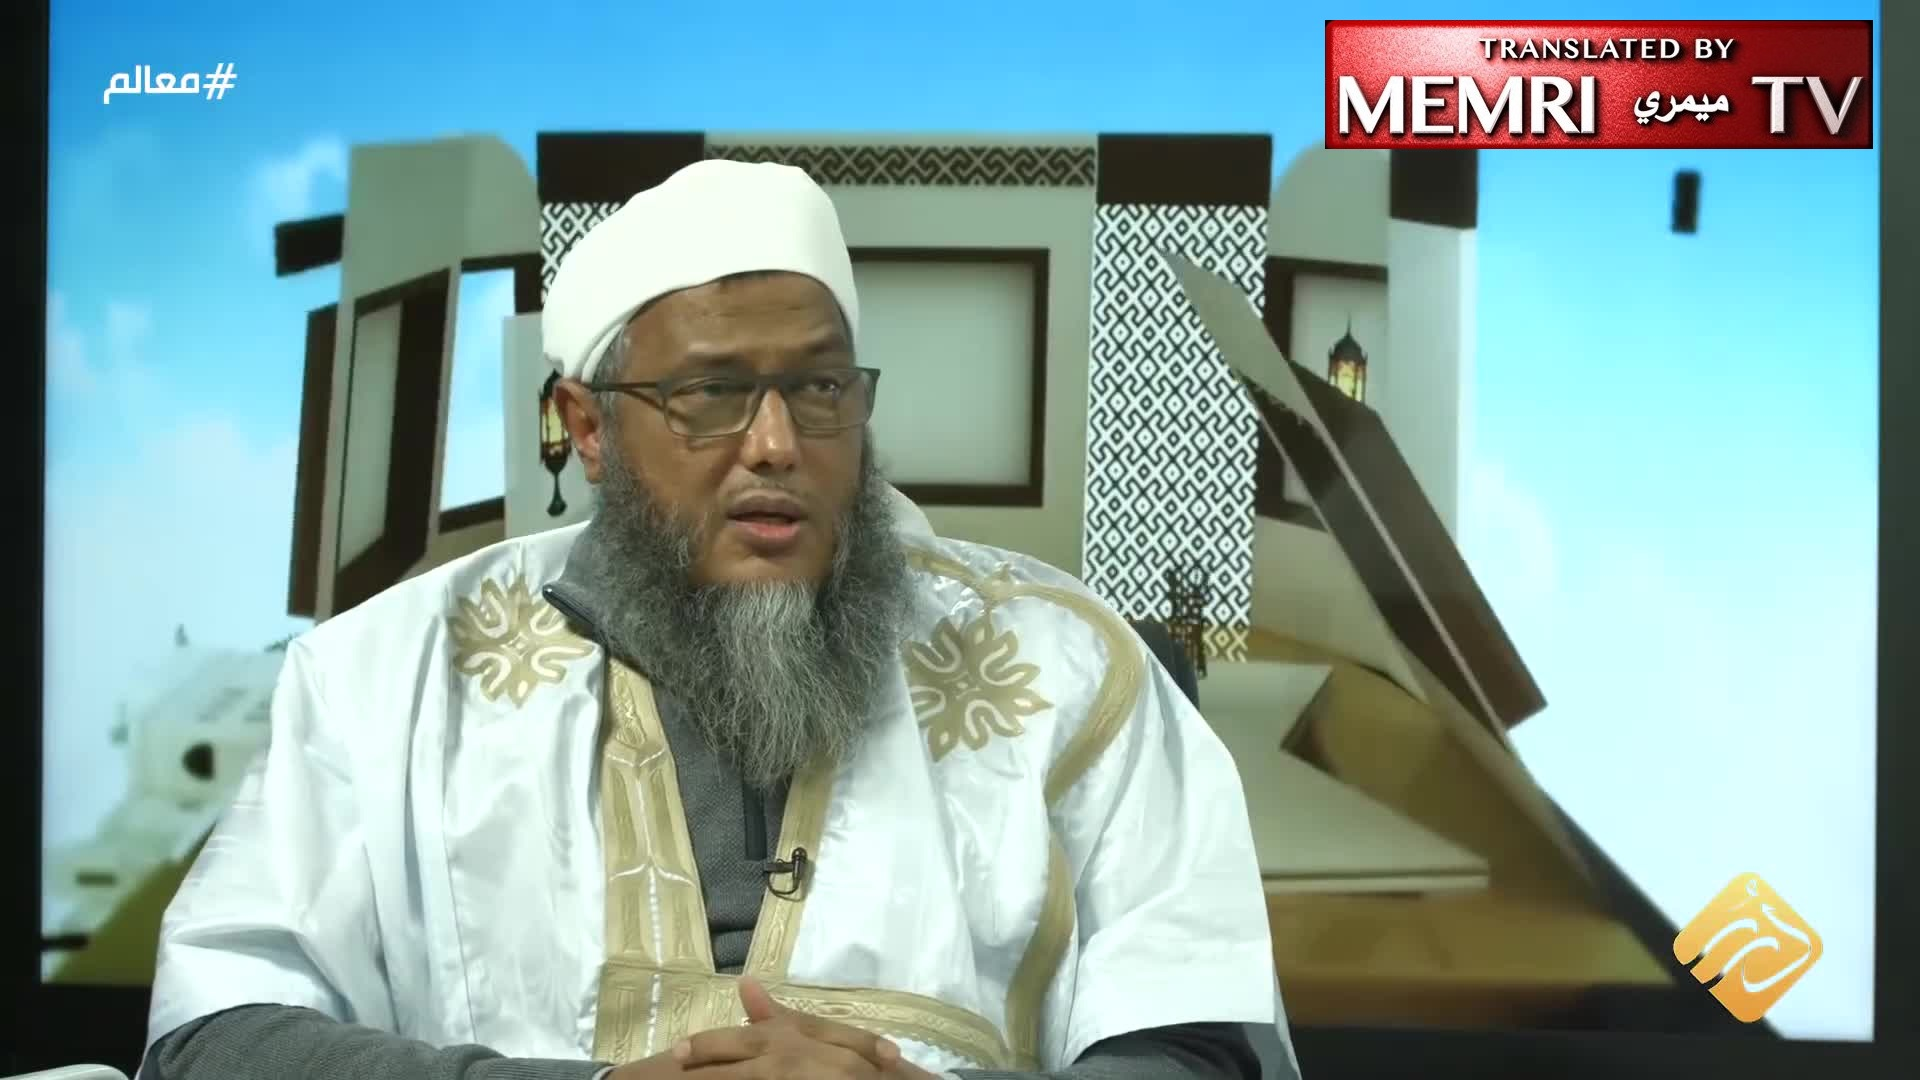 Antisemitic Statements by Mauritanian Cleric Muhammad Ould Dedew: The Jews Are Allah's Enemies; They Are Behind World's Institutions of Usury; Two Doomsday Wars with the Jews Ahead